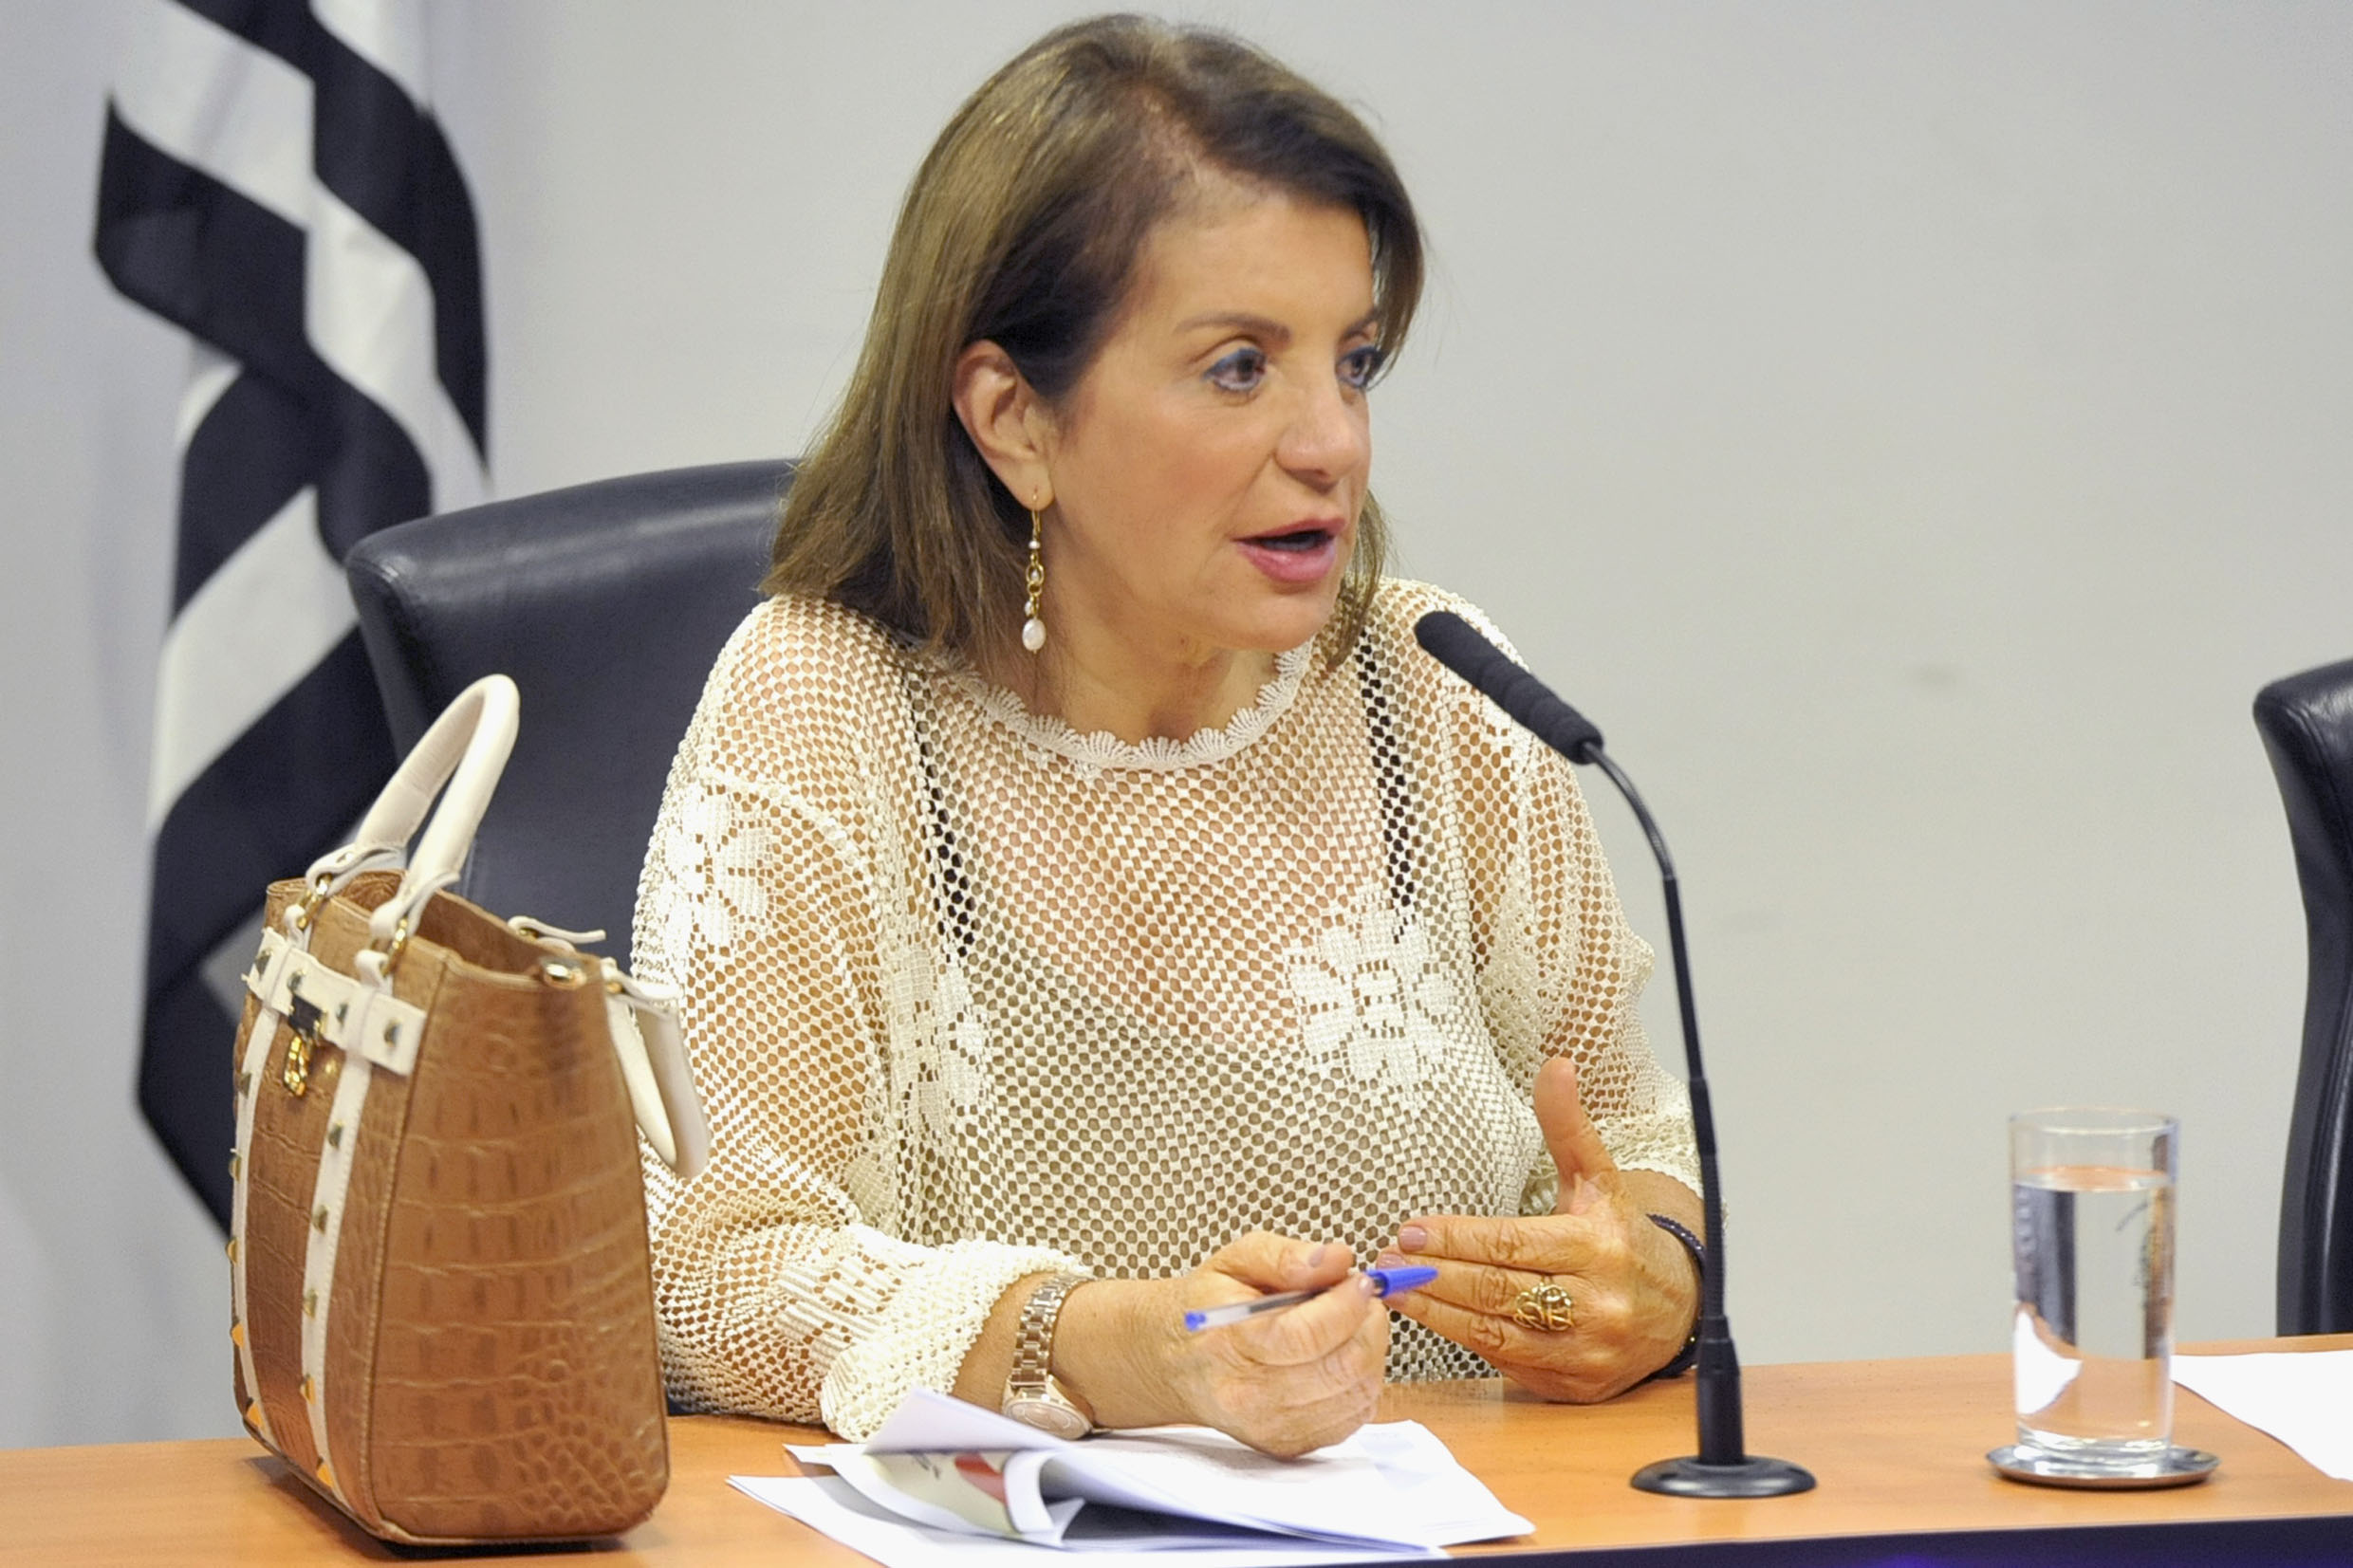 Professora Bebel<a style='float:right' href='https://www3.al.sp.gov.br/repositorio/noticia/N-05-2019/fg233594.jpg' target=_blank><img src='/_img/material-file-download-white.png' width='14px' alt='Clique para baixar a imagem'></a>